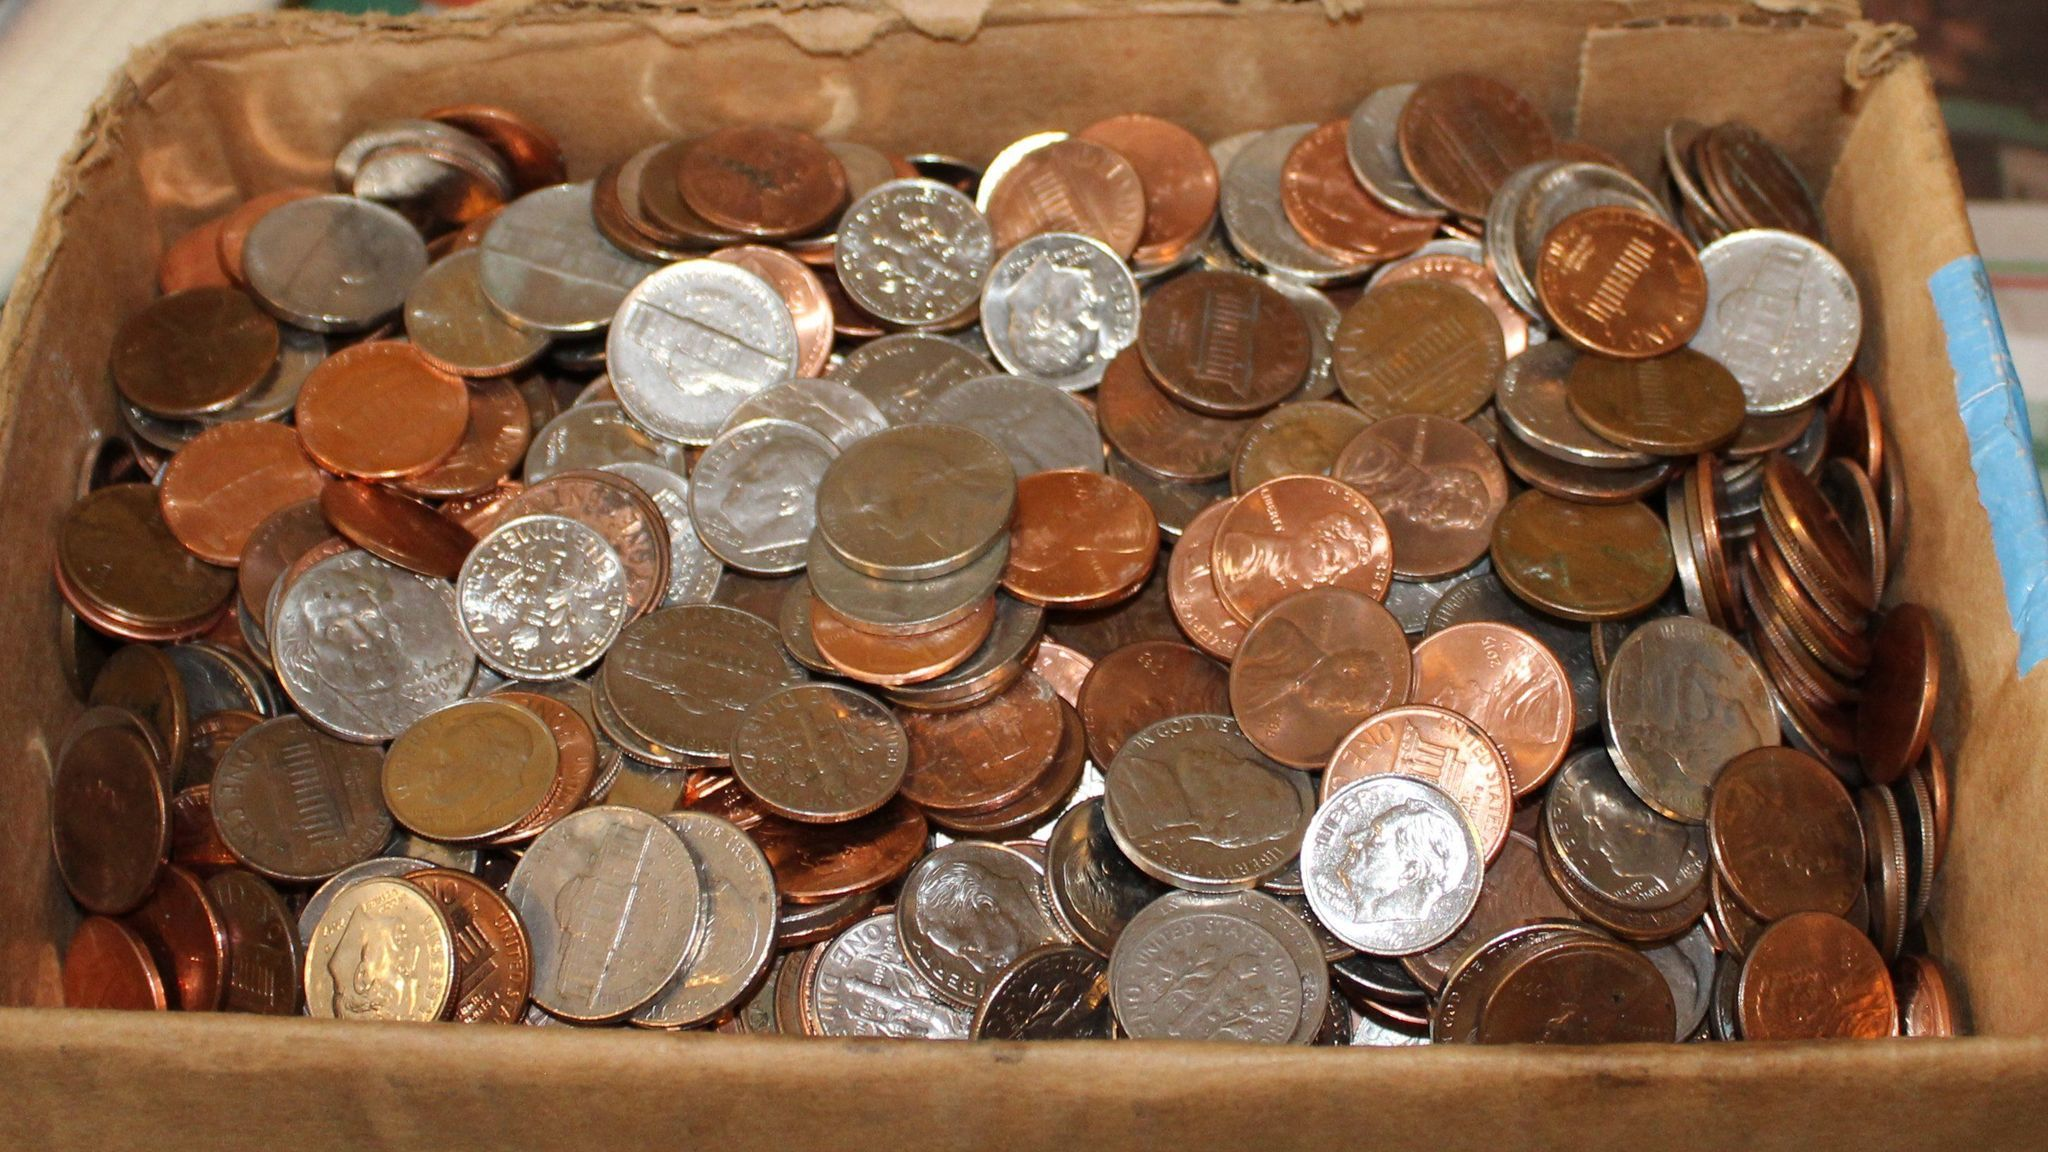 Greg Chick leaves a box full of change for Don Owen to donate to whom he wishes.